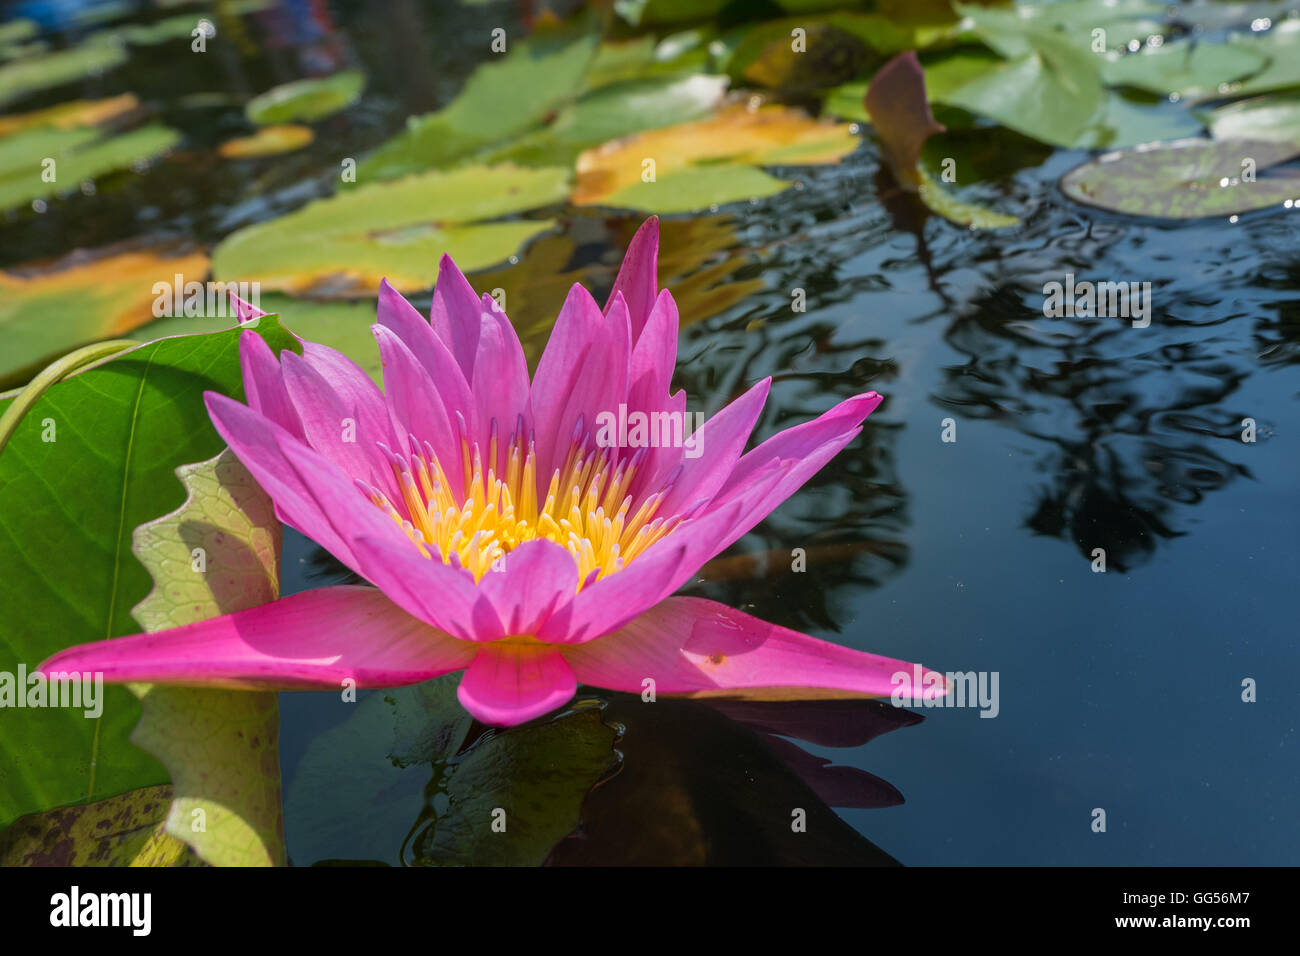 Lotus Flower In Pink Purple Violet Color With Green Leaves In Nature